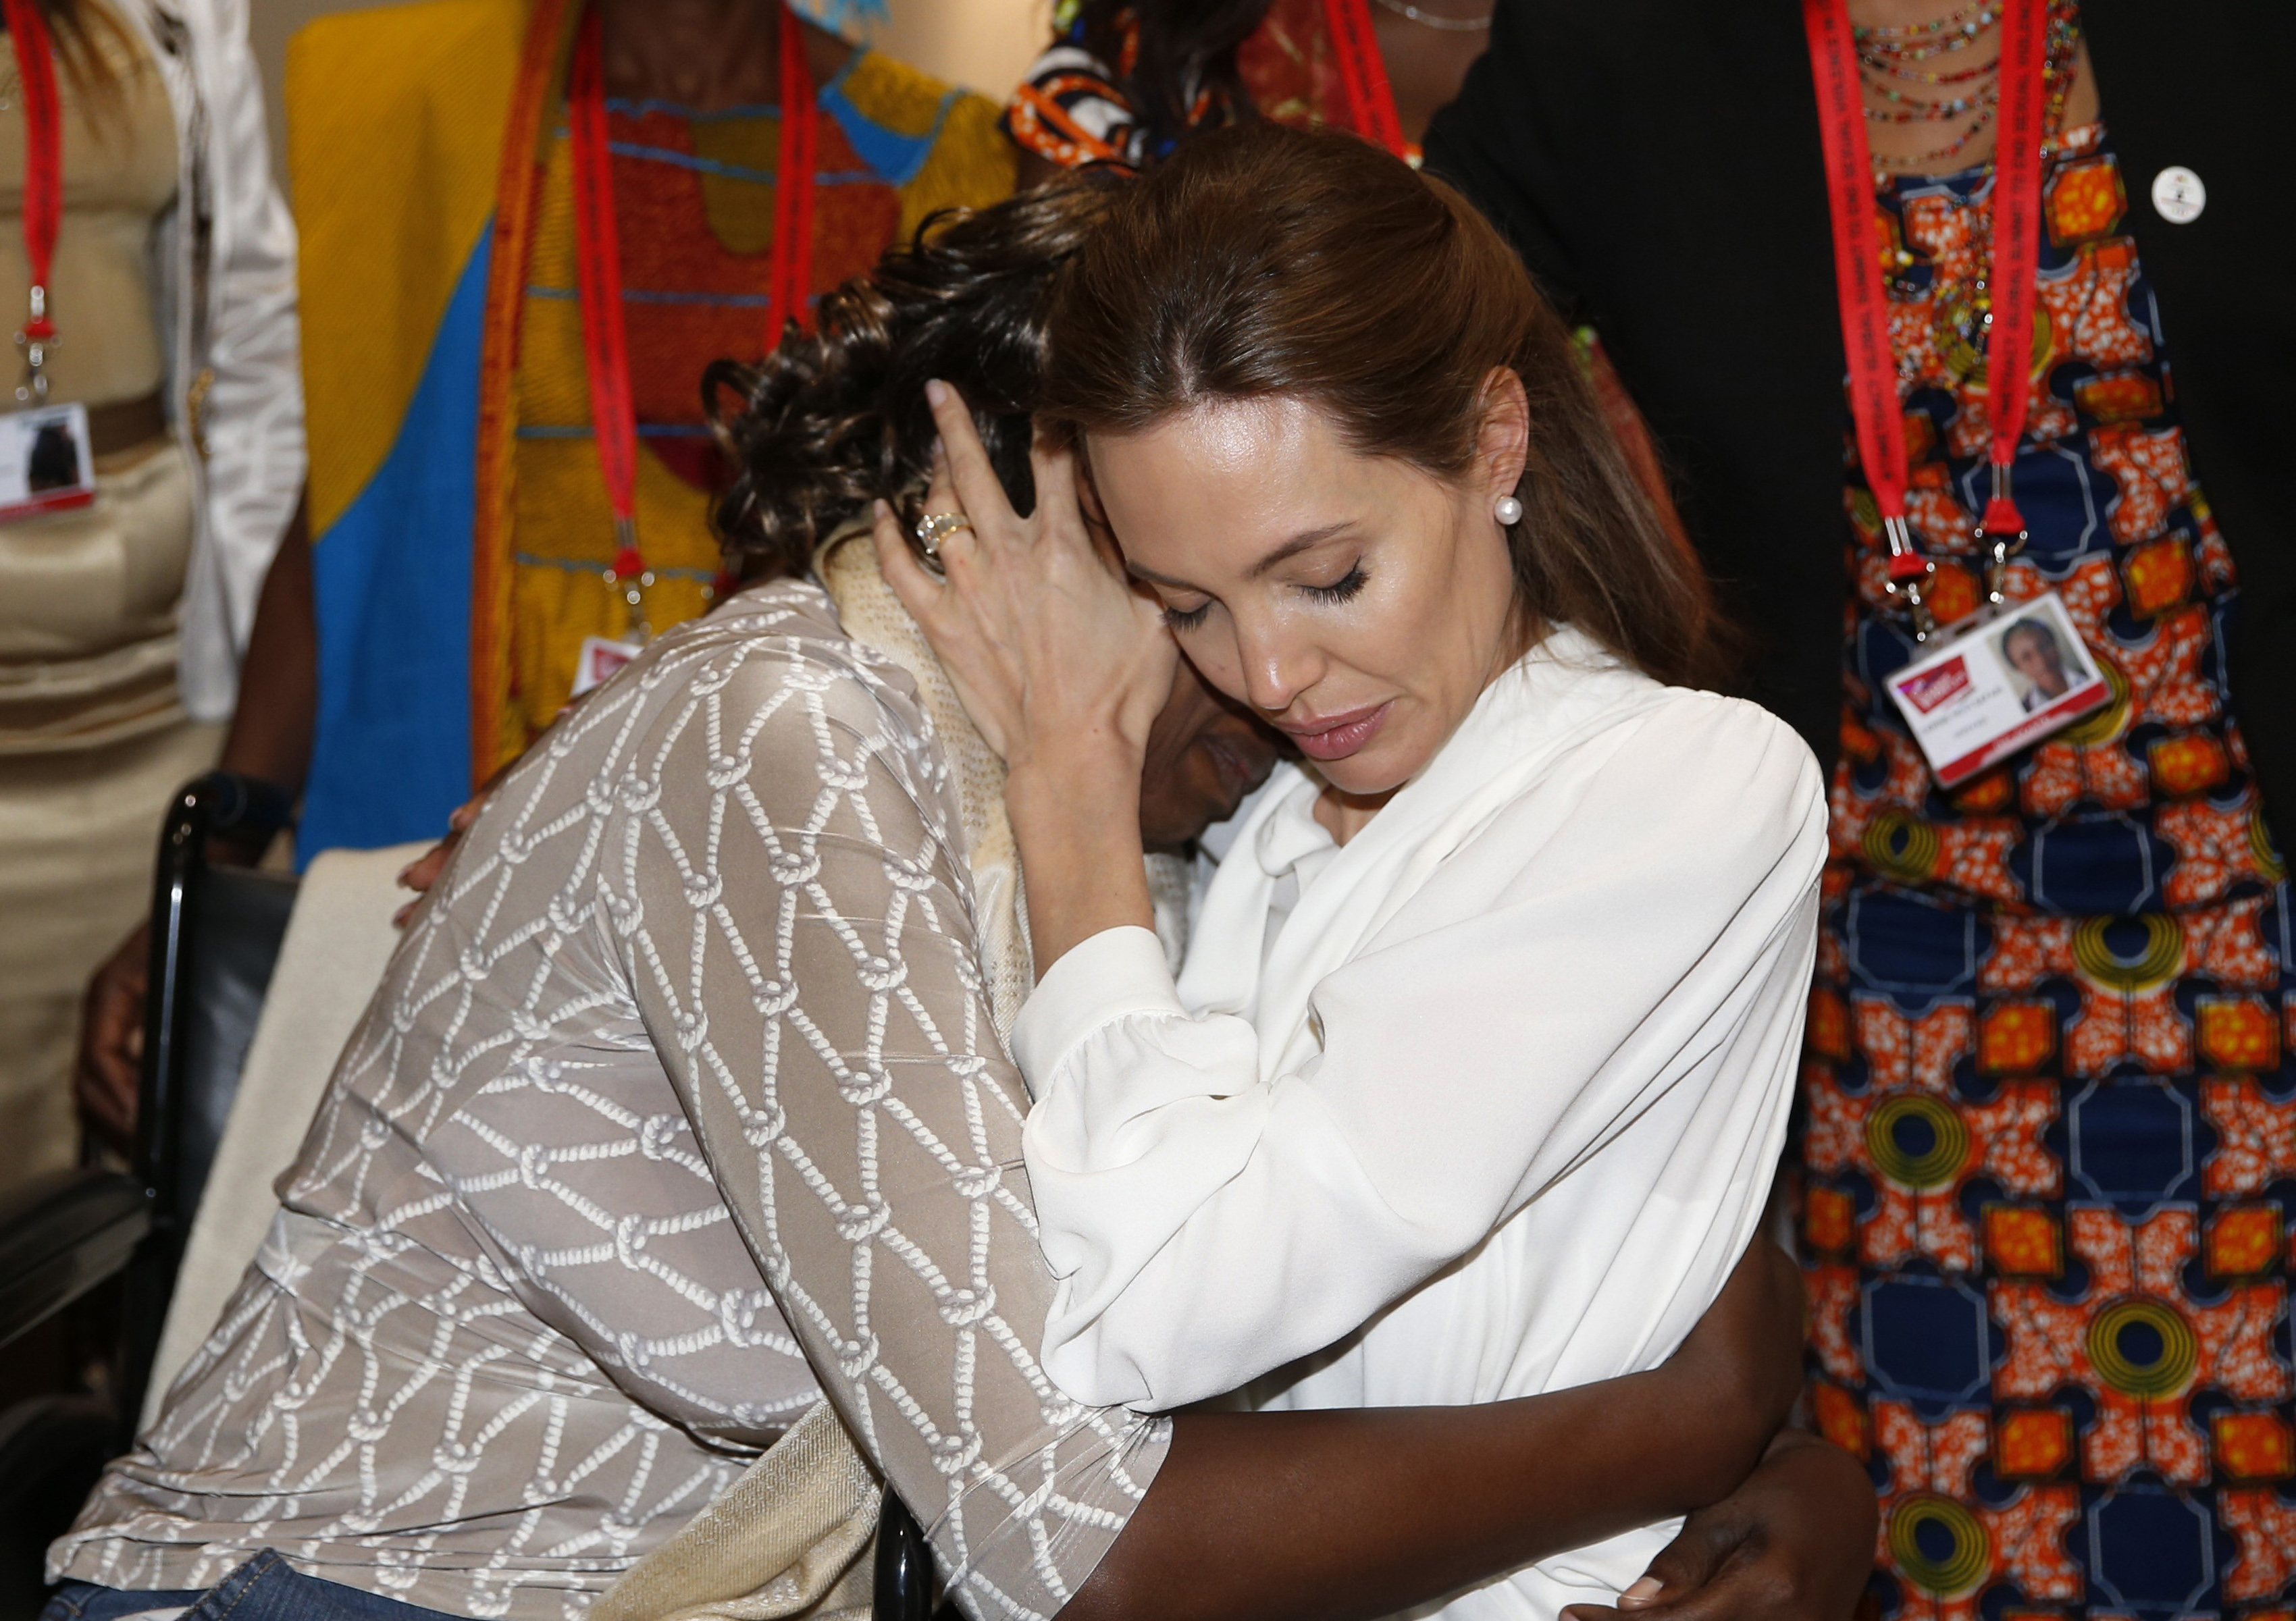 Actress and Special Envoy of the United Nations High Commissioner for Refugees, Angelina Jolie, hugs Neema Namadamu of the Democratic Republic of Congo a the 'End Sexual Violence in Conflict' summit in London June 11, 2014.